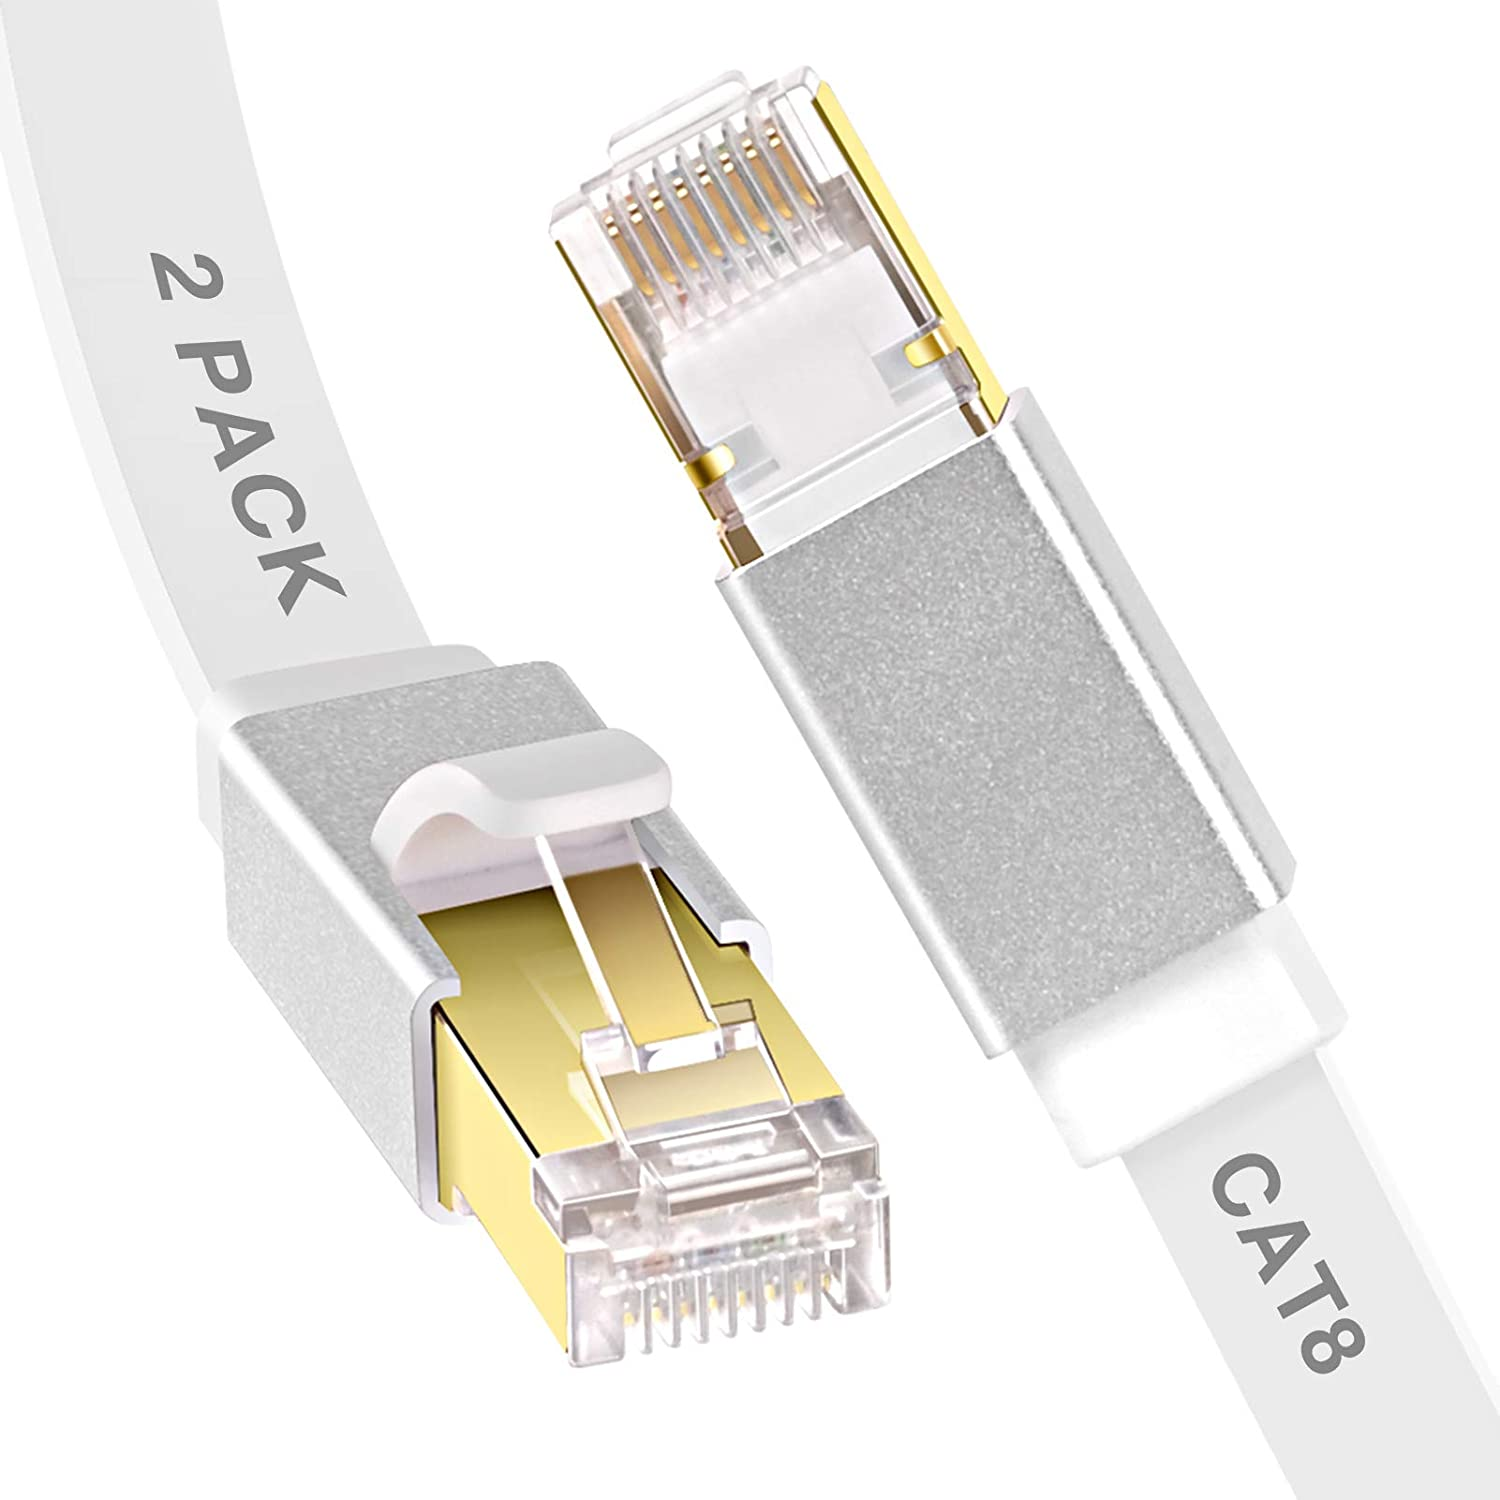 Ethernet Cable 10 ft, GLANICS 2 Pack Cat 8 Network Internet Cables, Flat LAN Cord with RJ45 Connector for PoE, Modem, Router, Switch, Gaming (White)